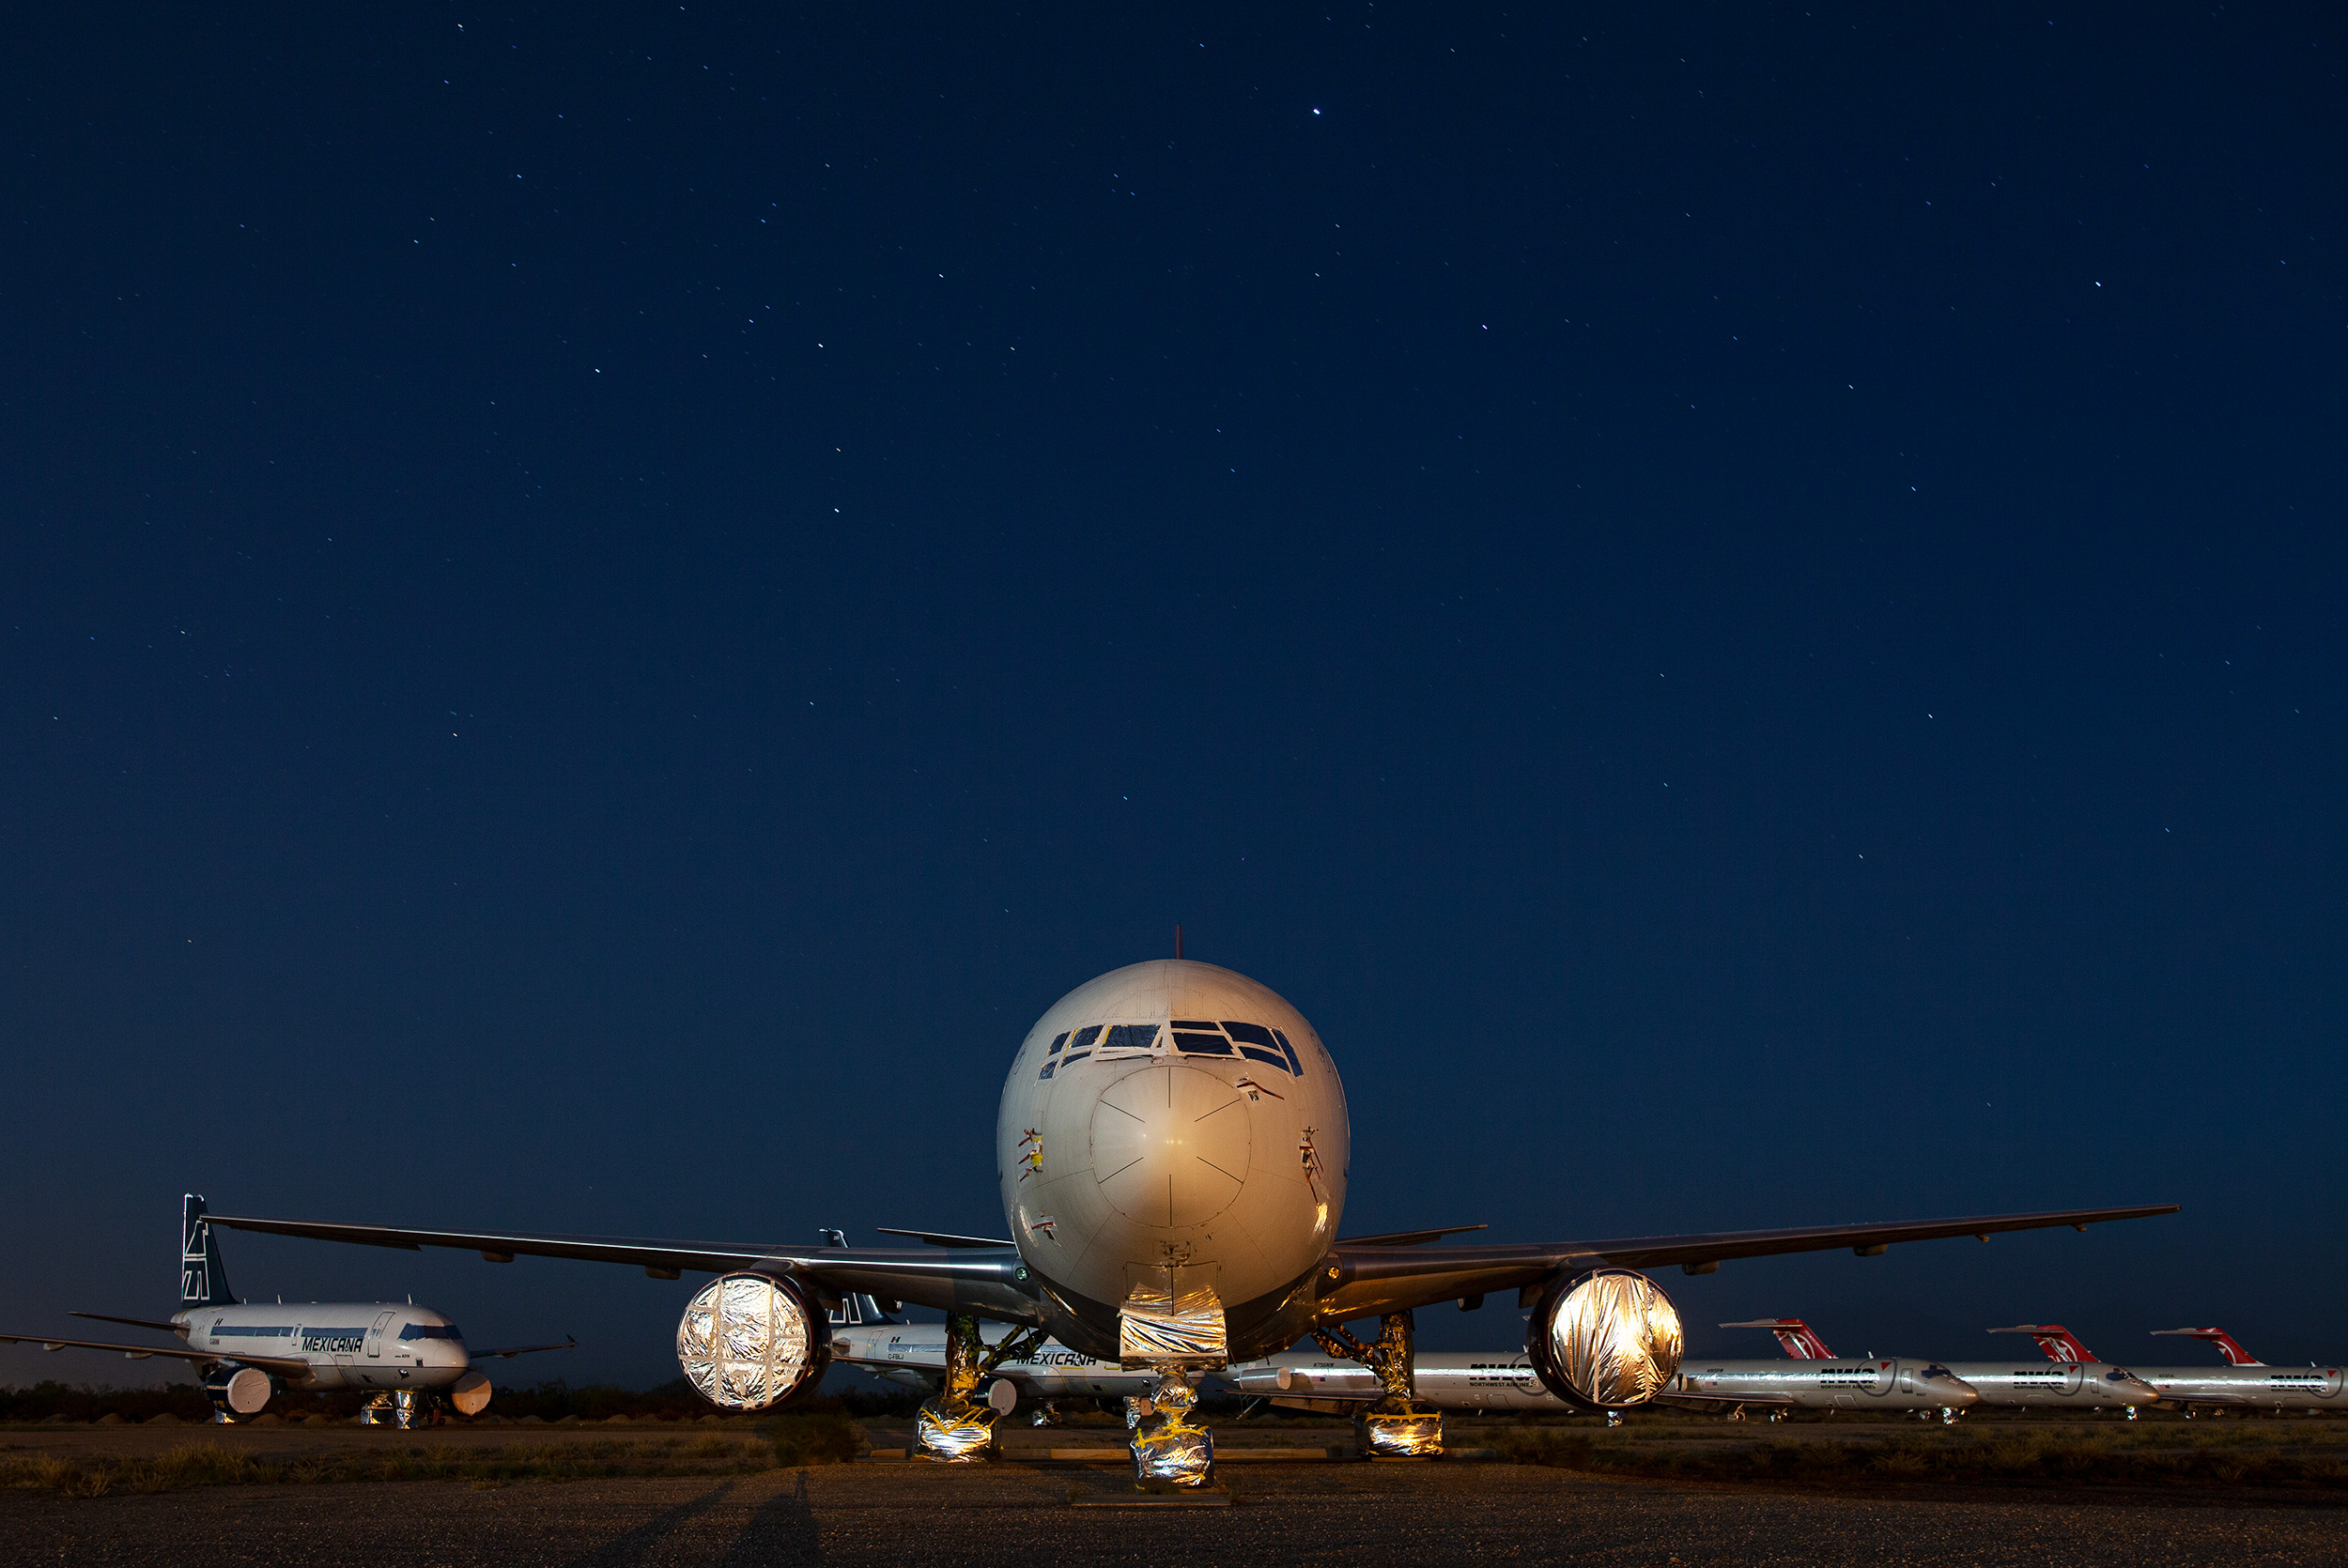 737 at night - Steve Craft Photography - Phoenix Arizona Aviation Photographer